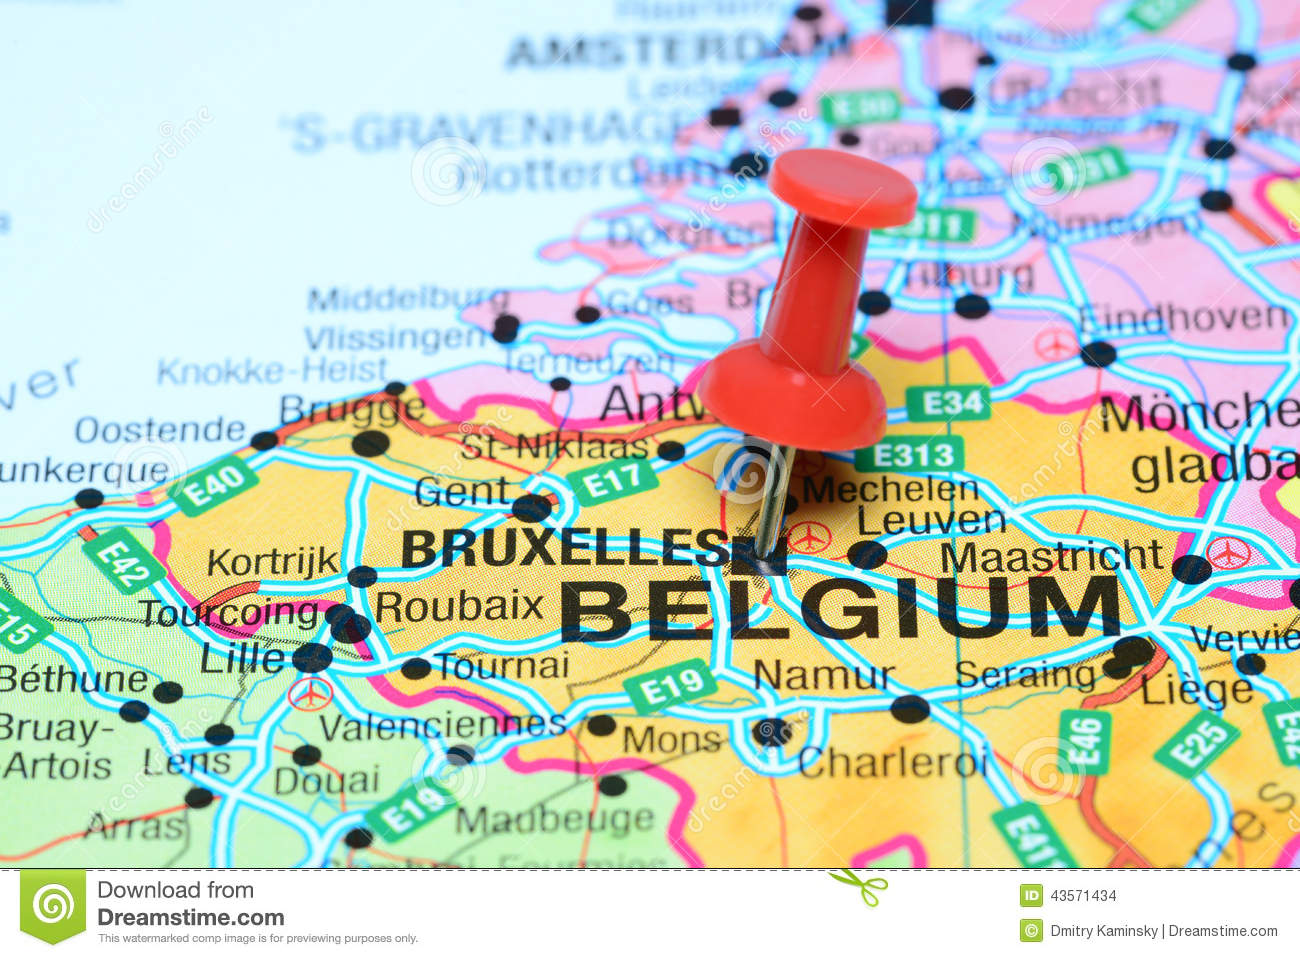 Bruxelles Carte Europe.Bruxelles A Goupille Sur Une Carte De L Europe Photo Stock